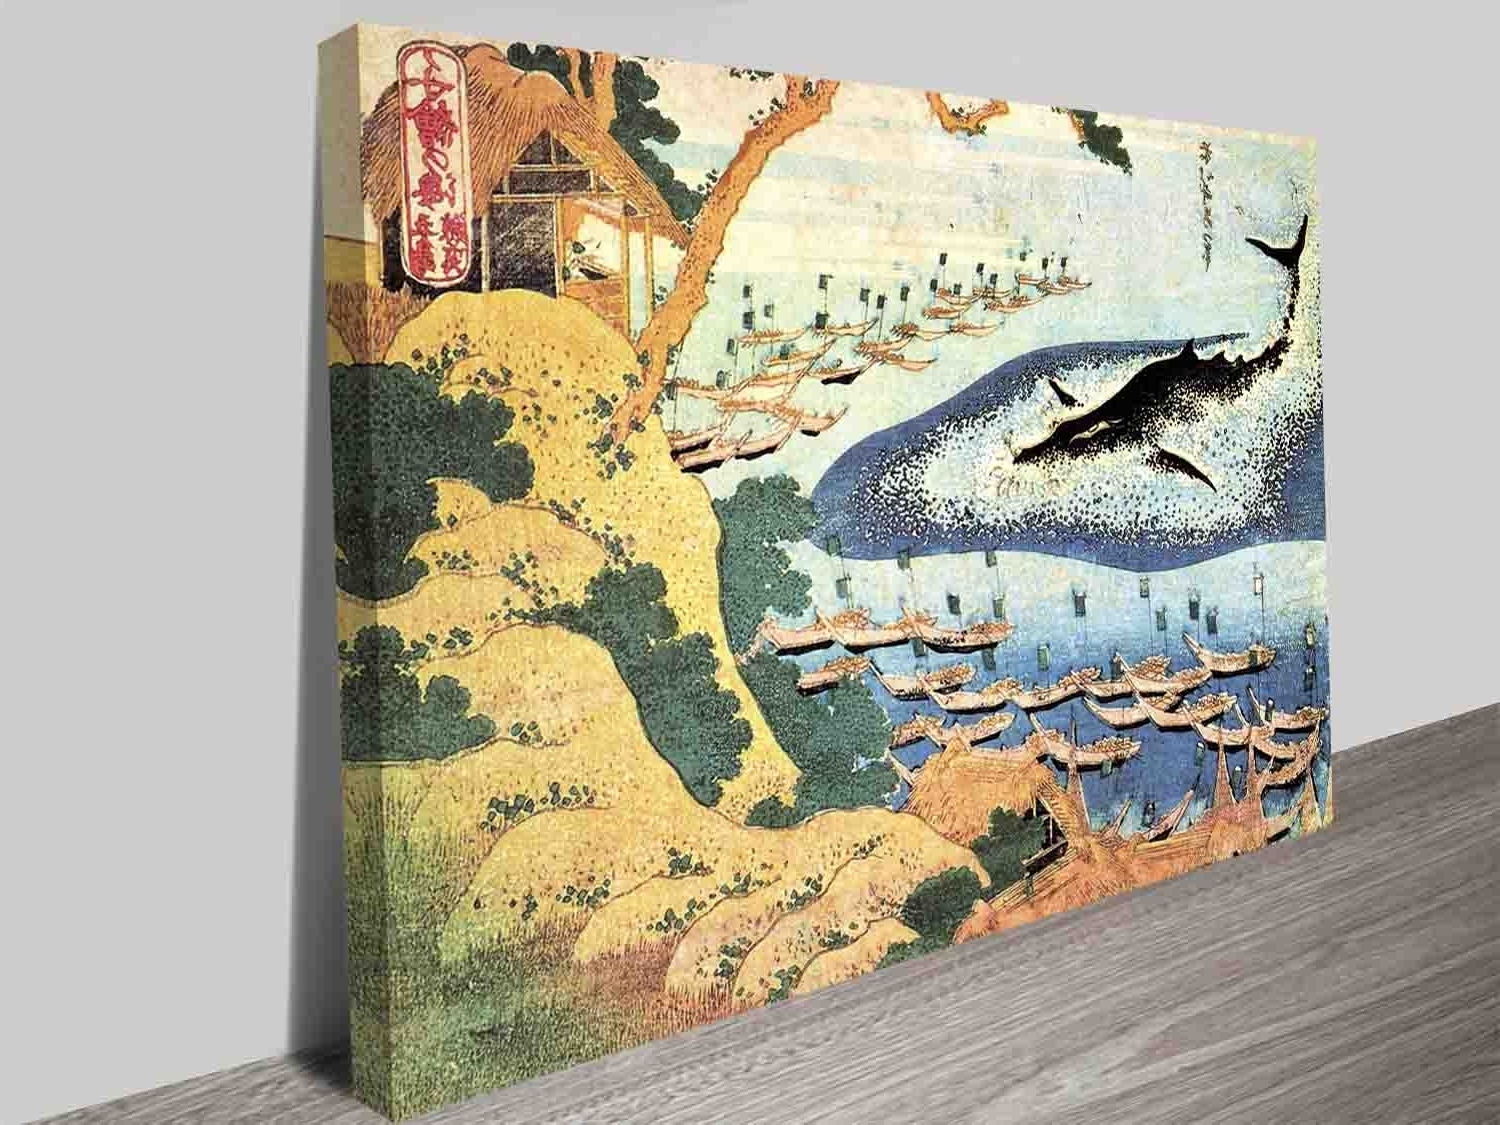 Whale Canvas Wall Art Inside Well Liked Katsushika Hokusai Ocean Landscape And Whale Wall Art Prints On (View 7 of 20)